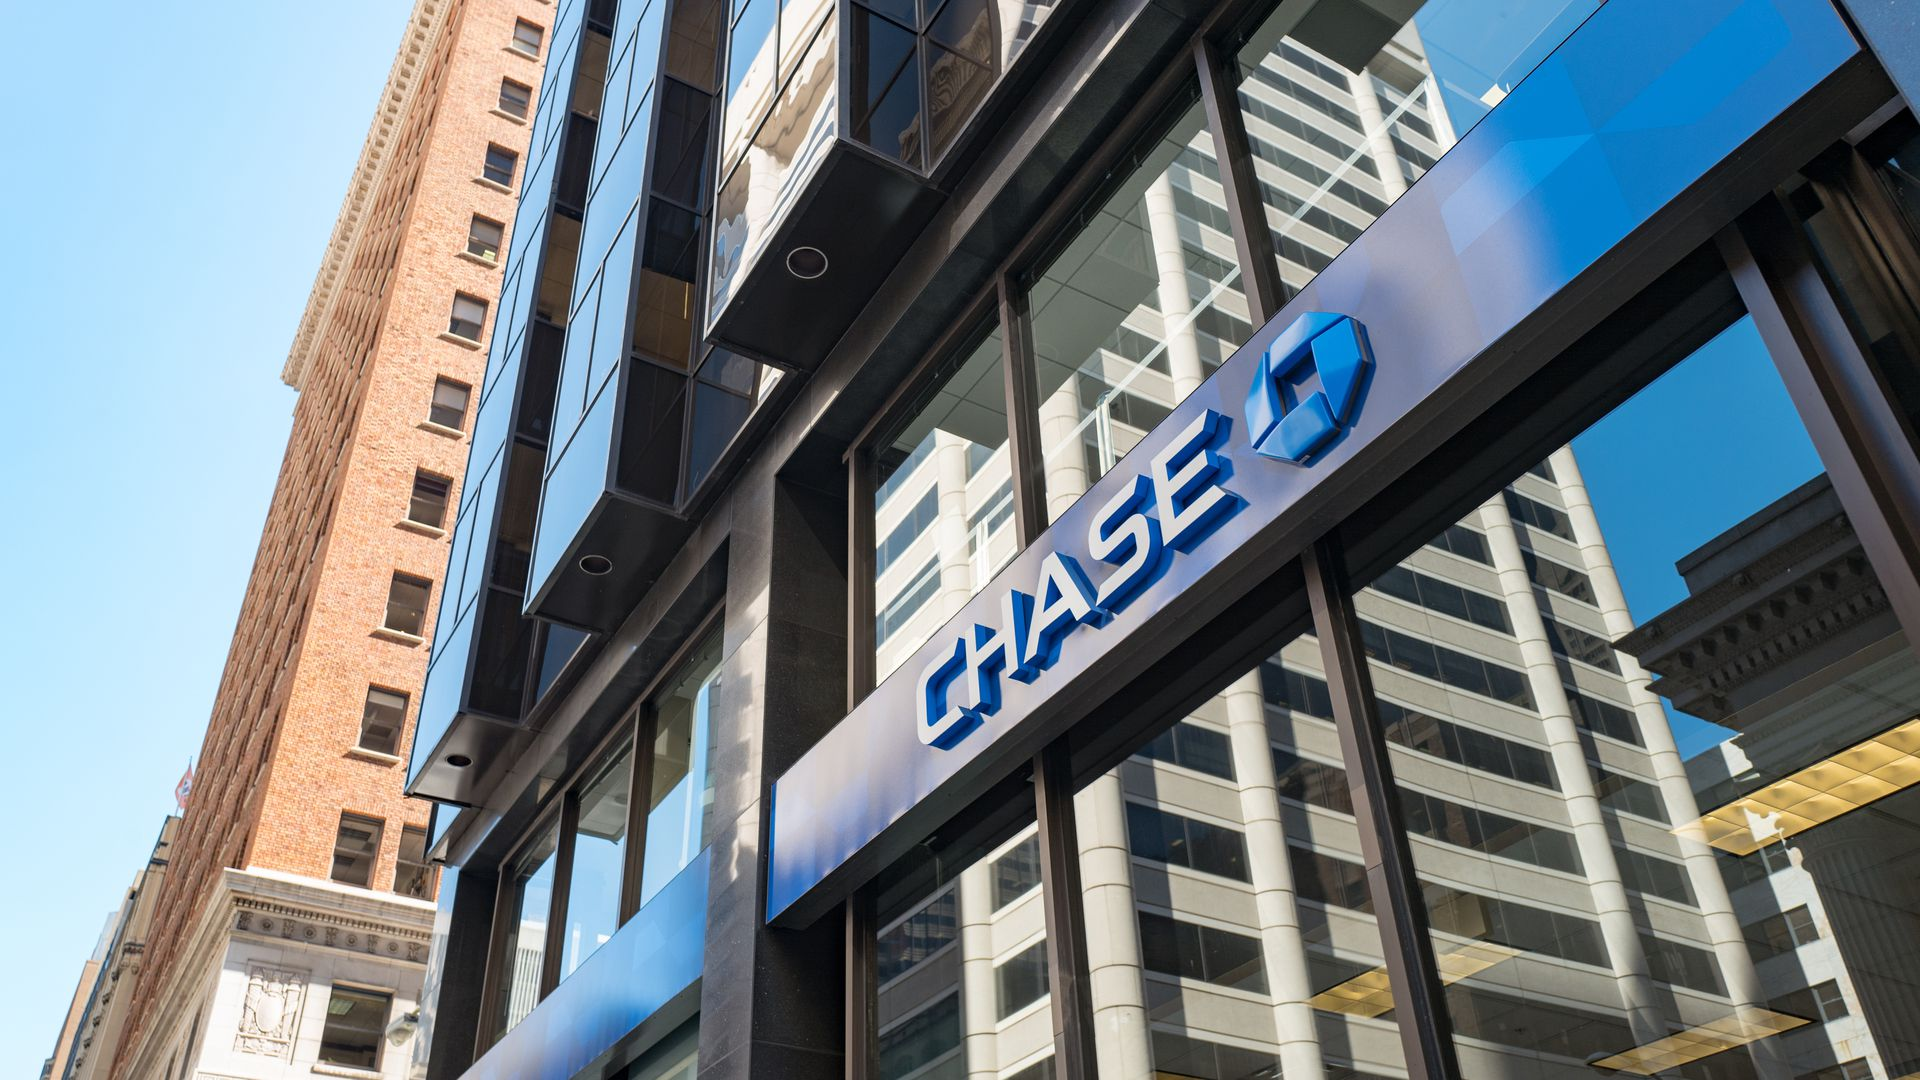 Signage with logo for Chase Bank in the Financial District neighborhood of San Francisco.